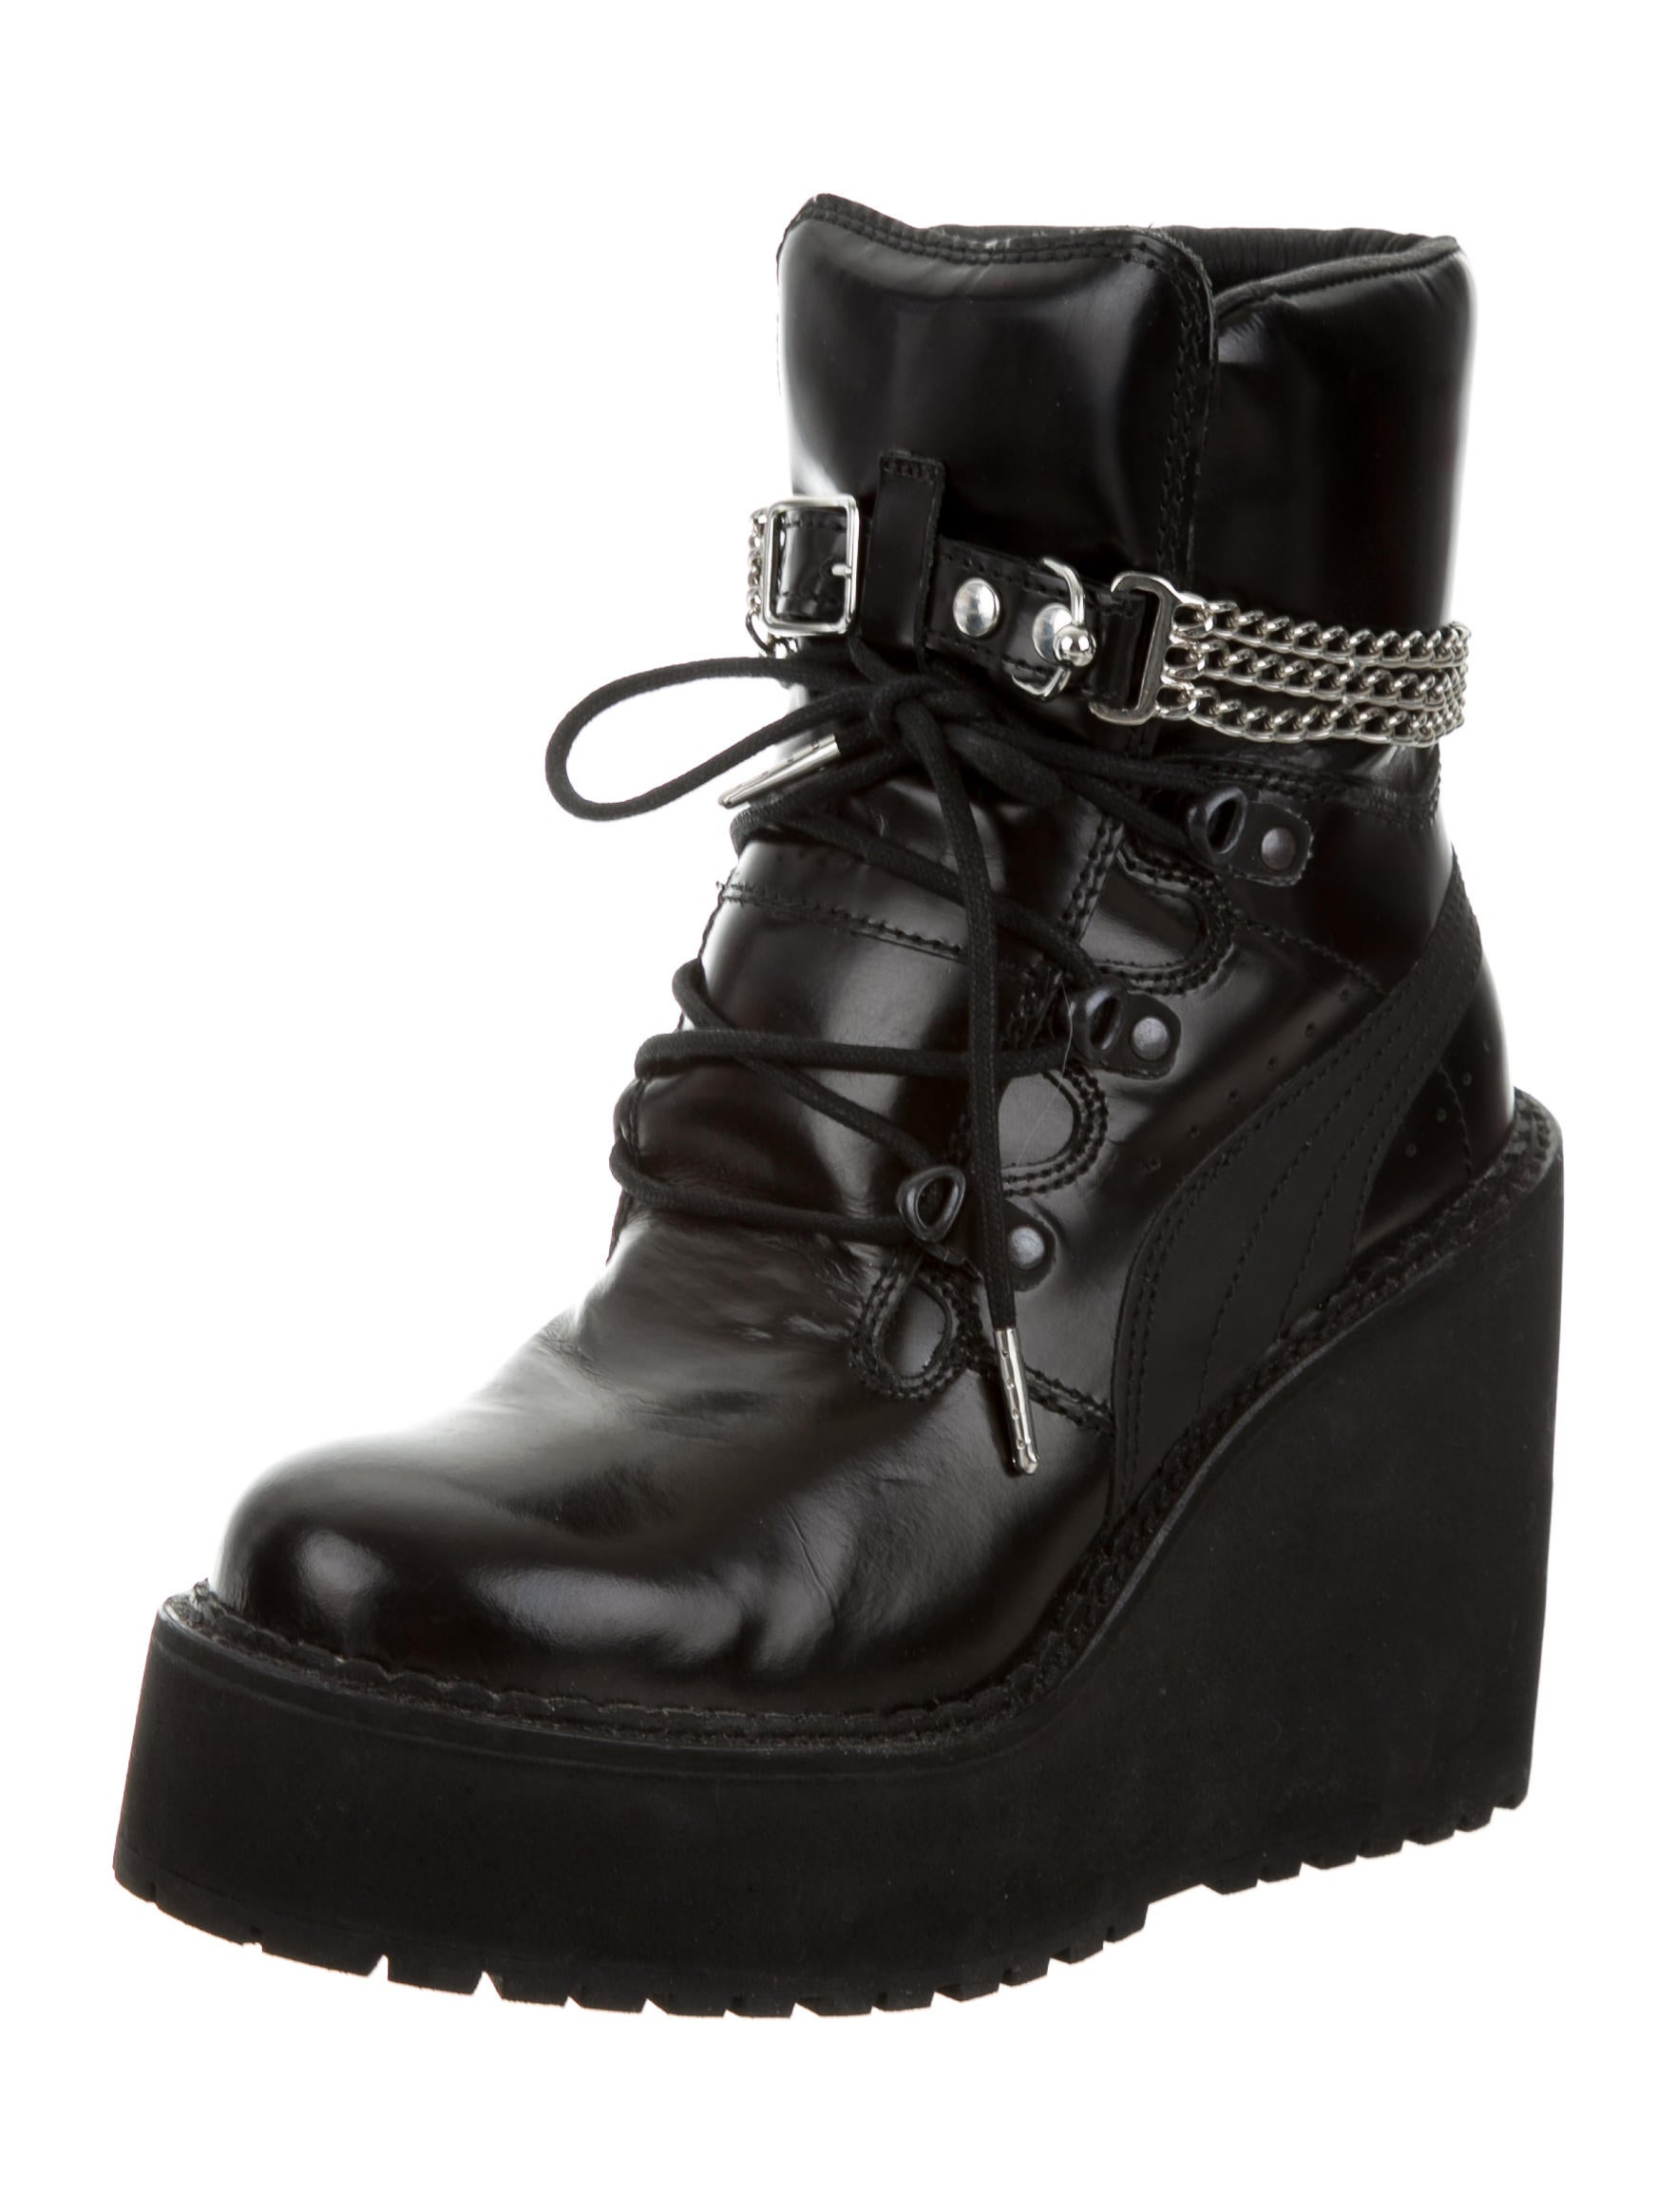 x fenty wedge ankle boots shoes wpmfy20078 the